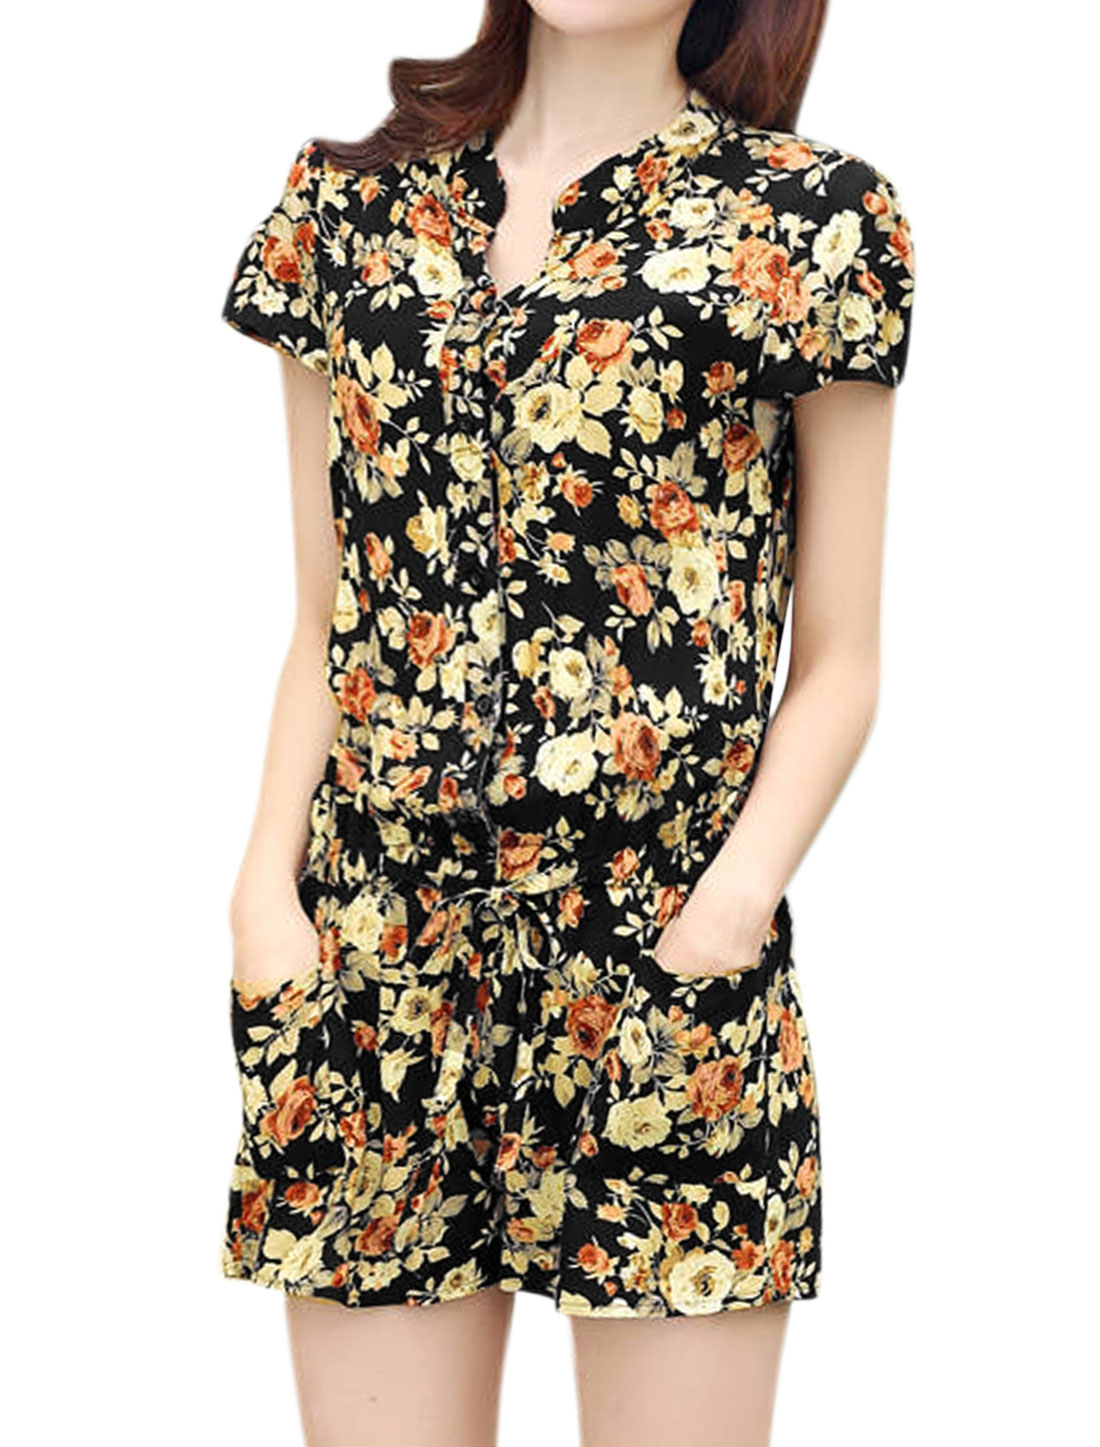 Women Floral Prints Cap Sleeves Elastic Waist Buttoned Romper Black S